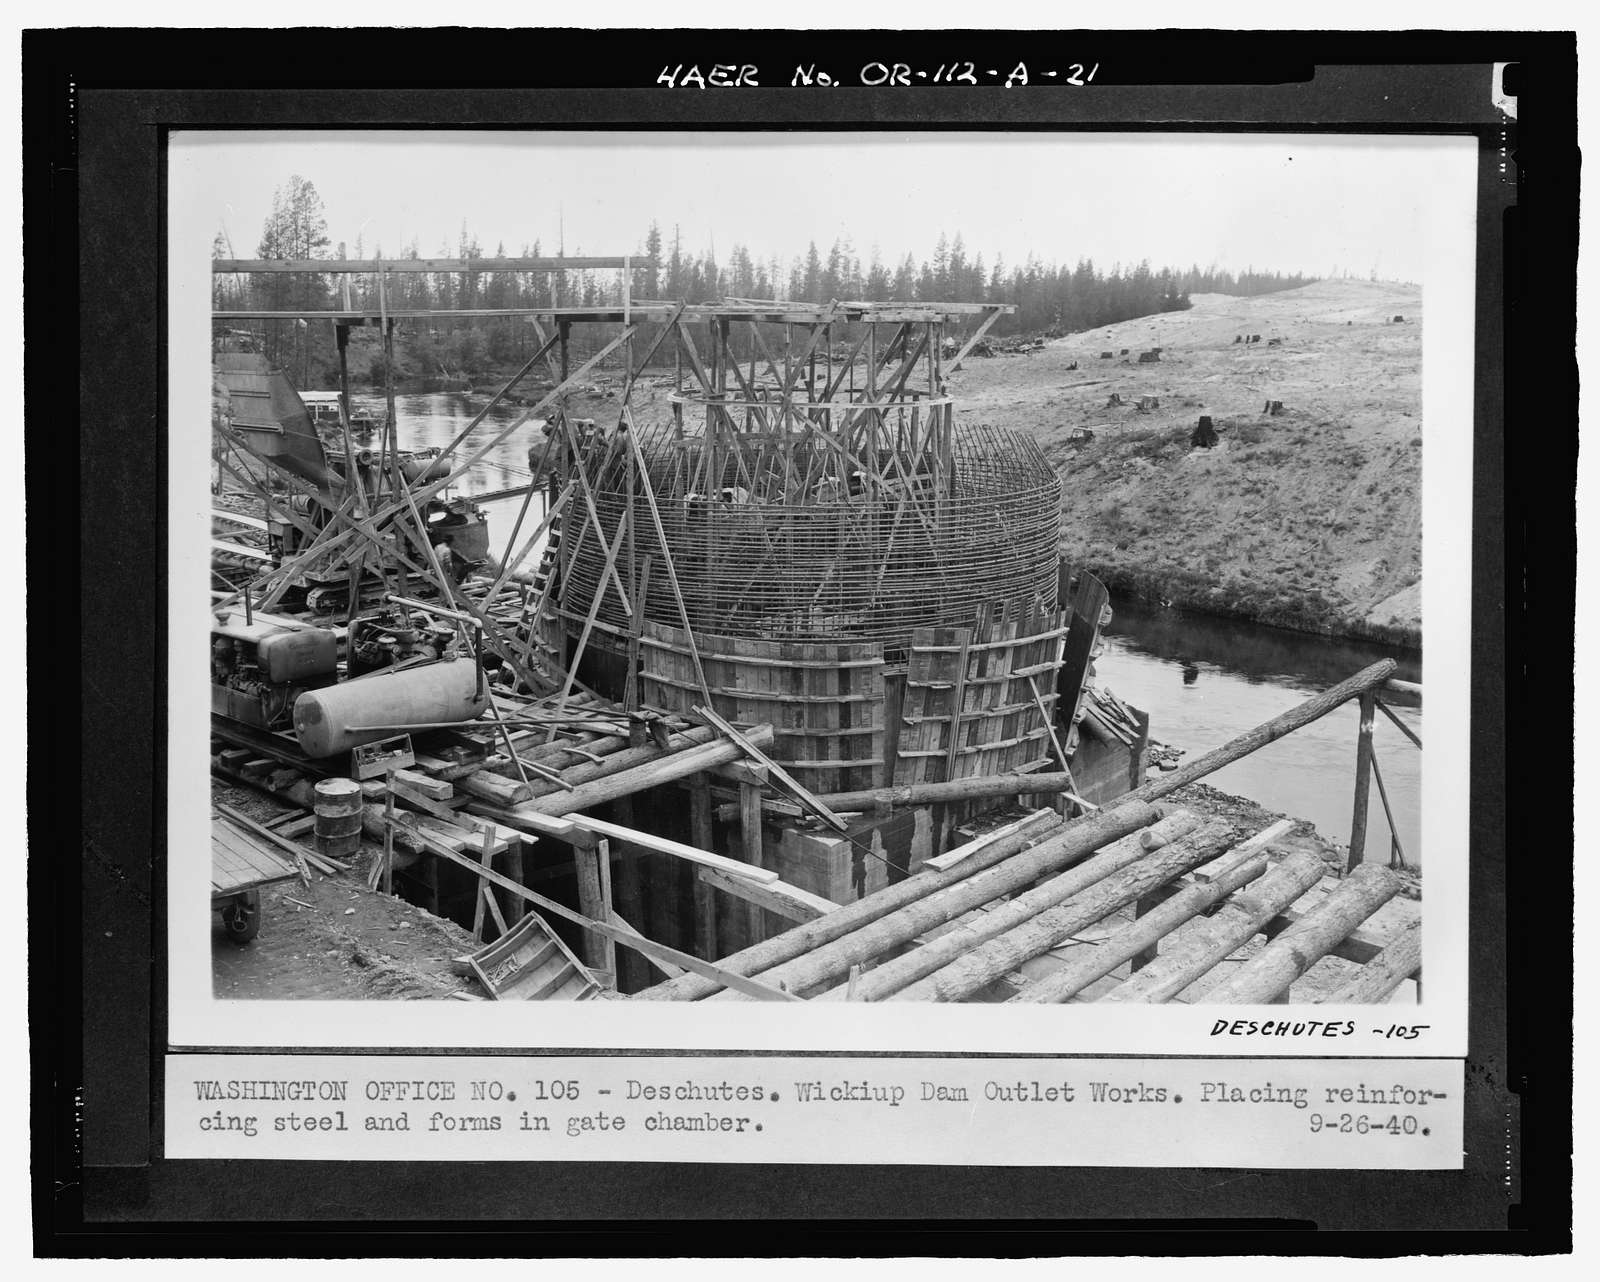 Wickiup Dam, Outlet Works, Deschutes River, La Pine, Deschutes County, OR